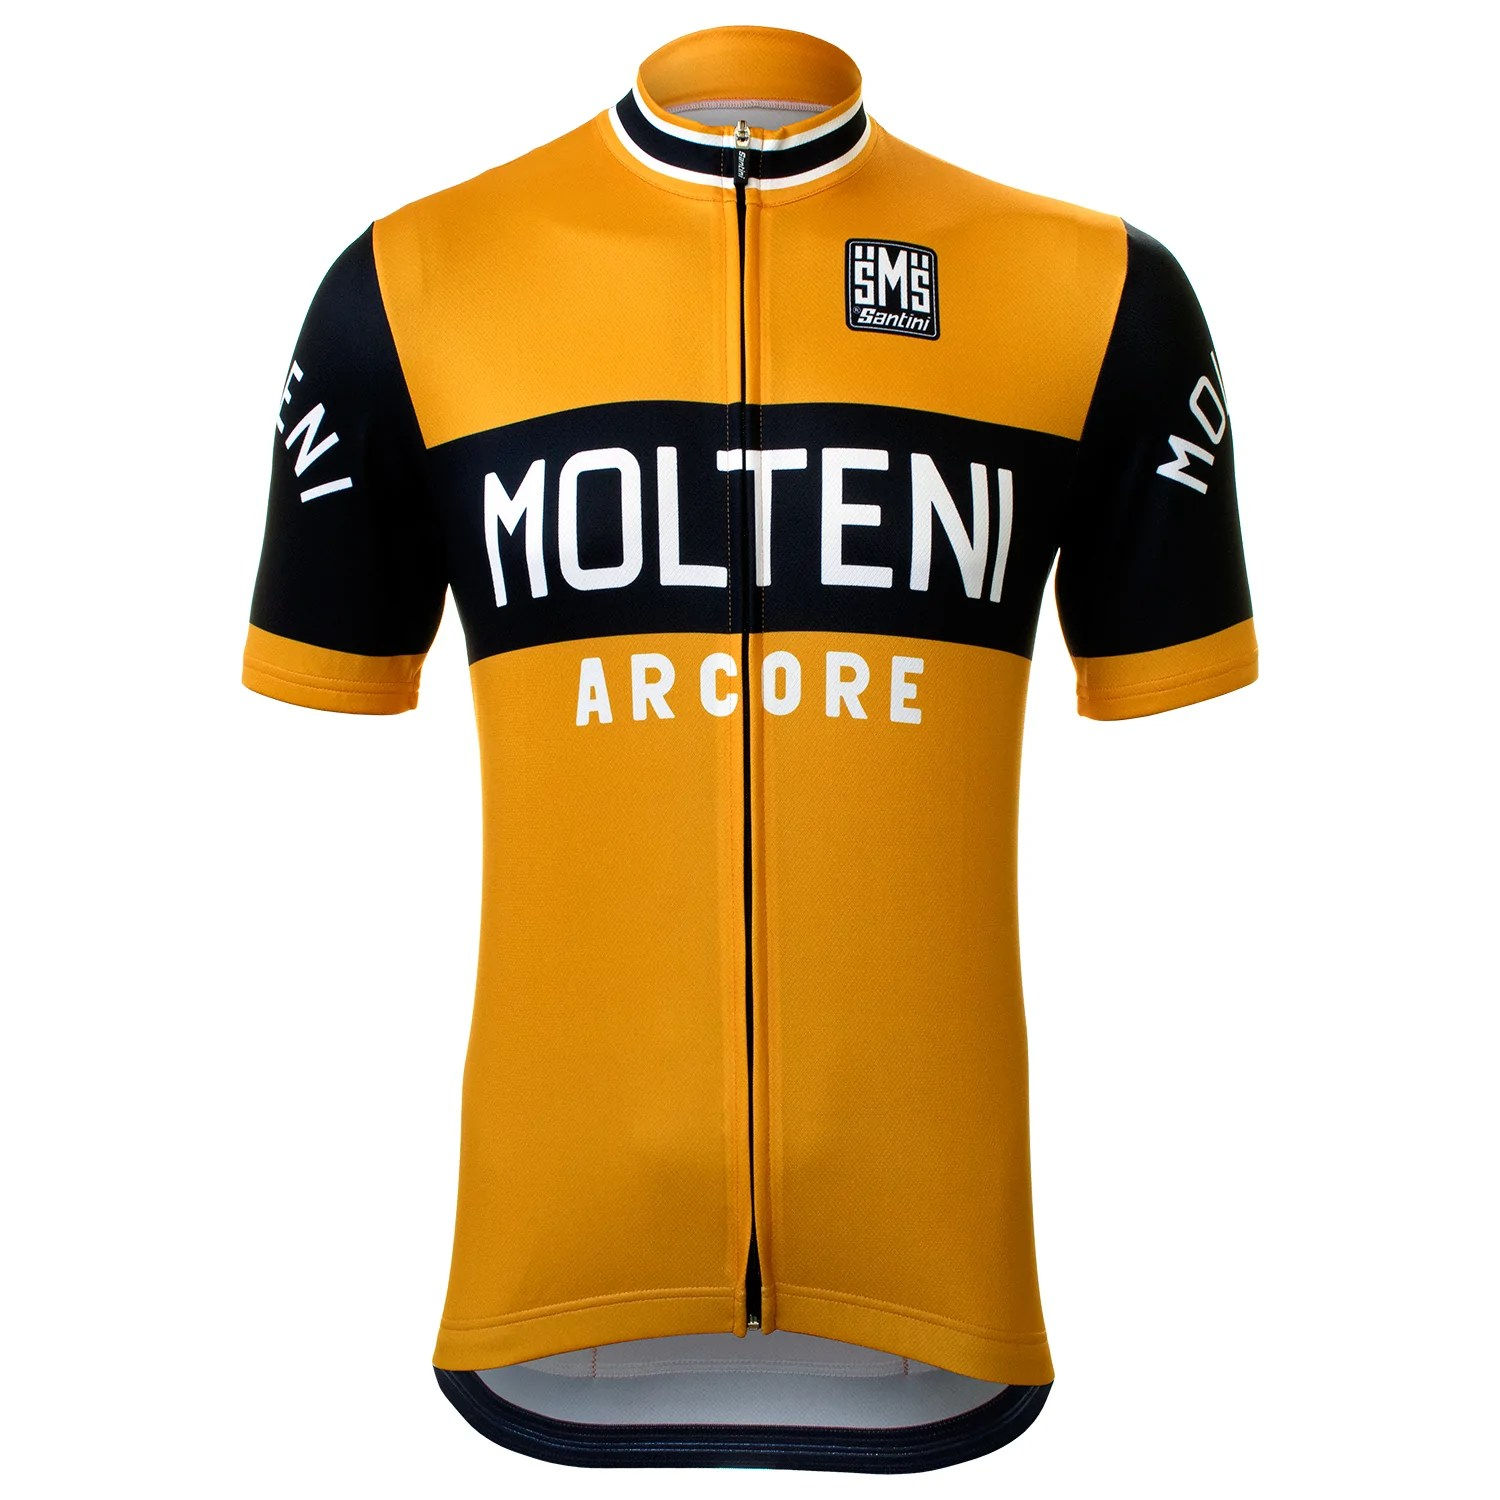 Retro Jerseys Molteni Cycling Molteni Cycling Jerseys Prendas Ciclismo